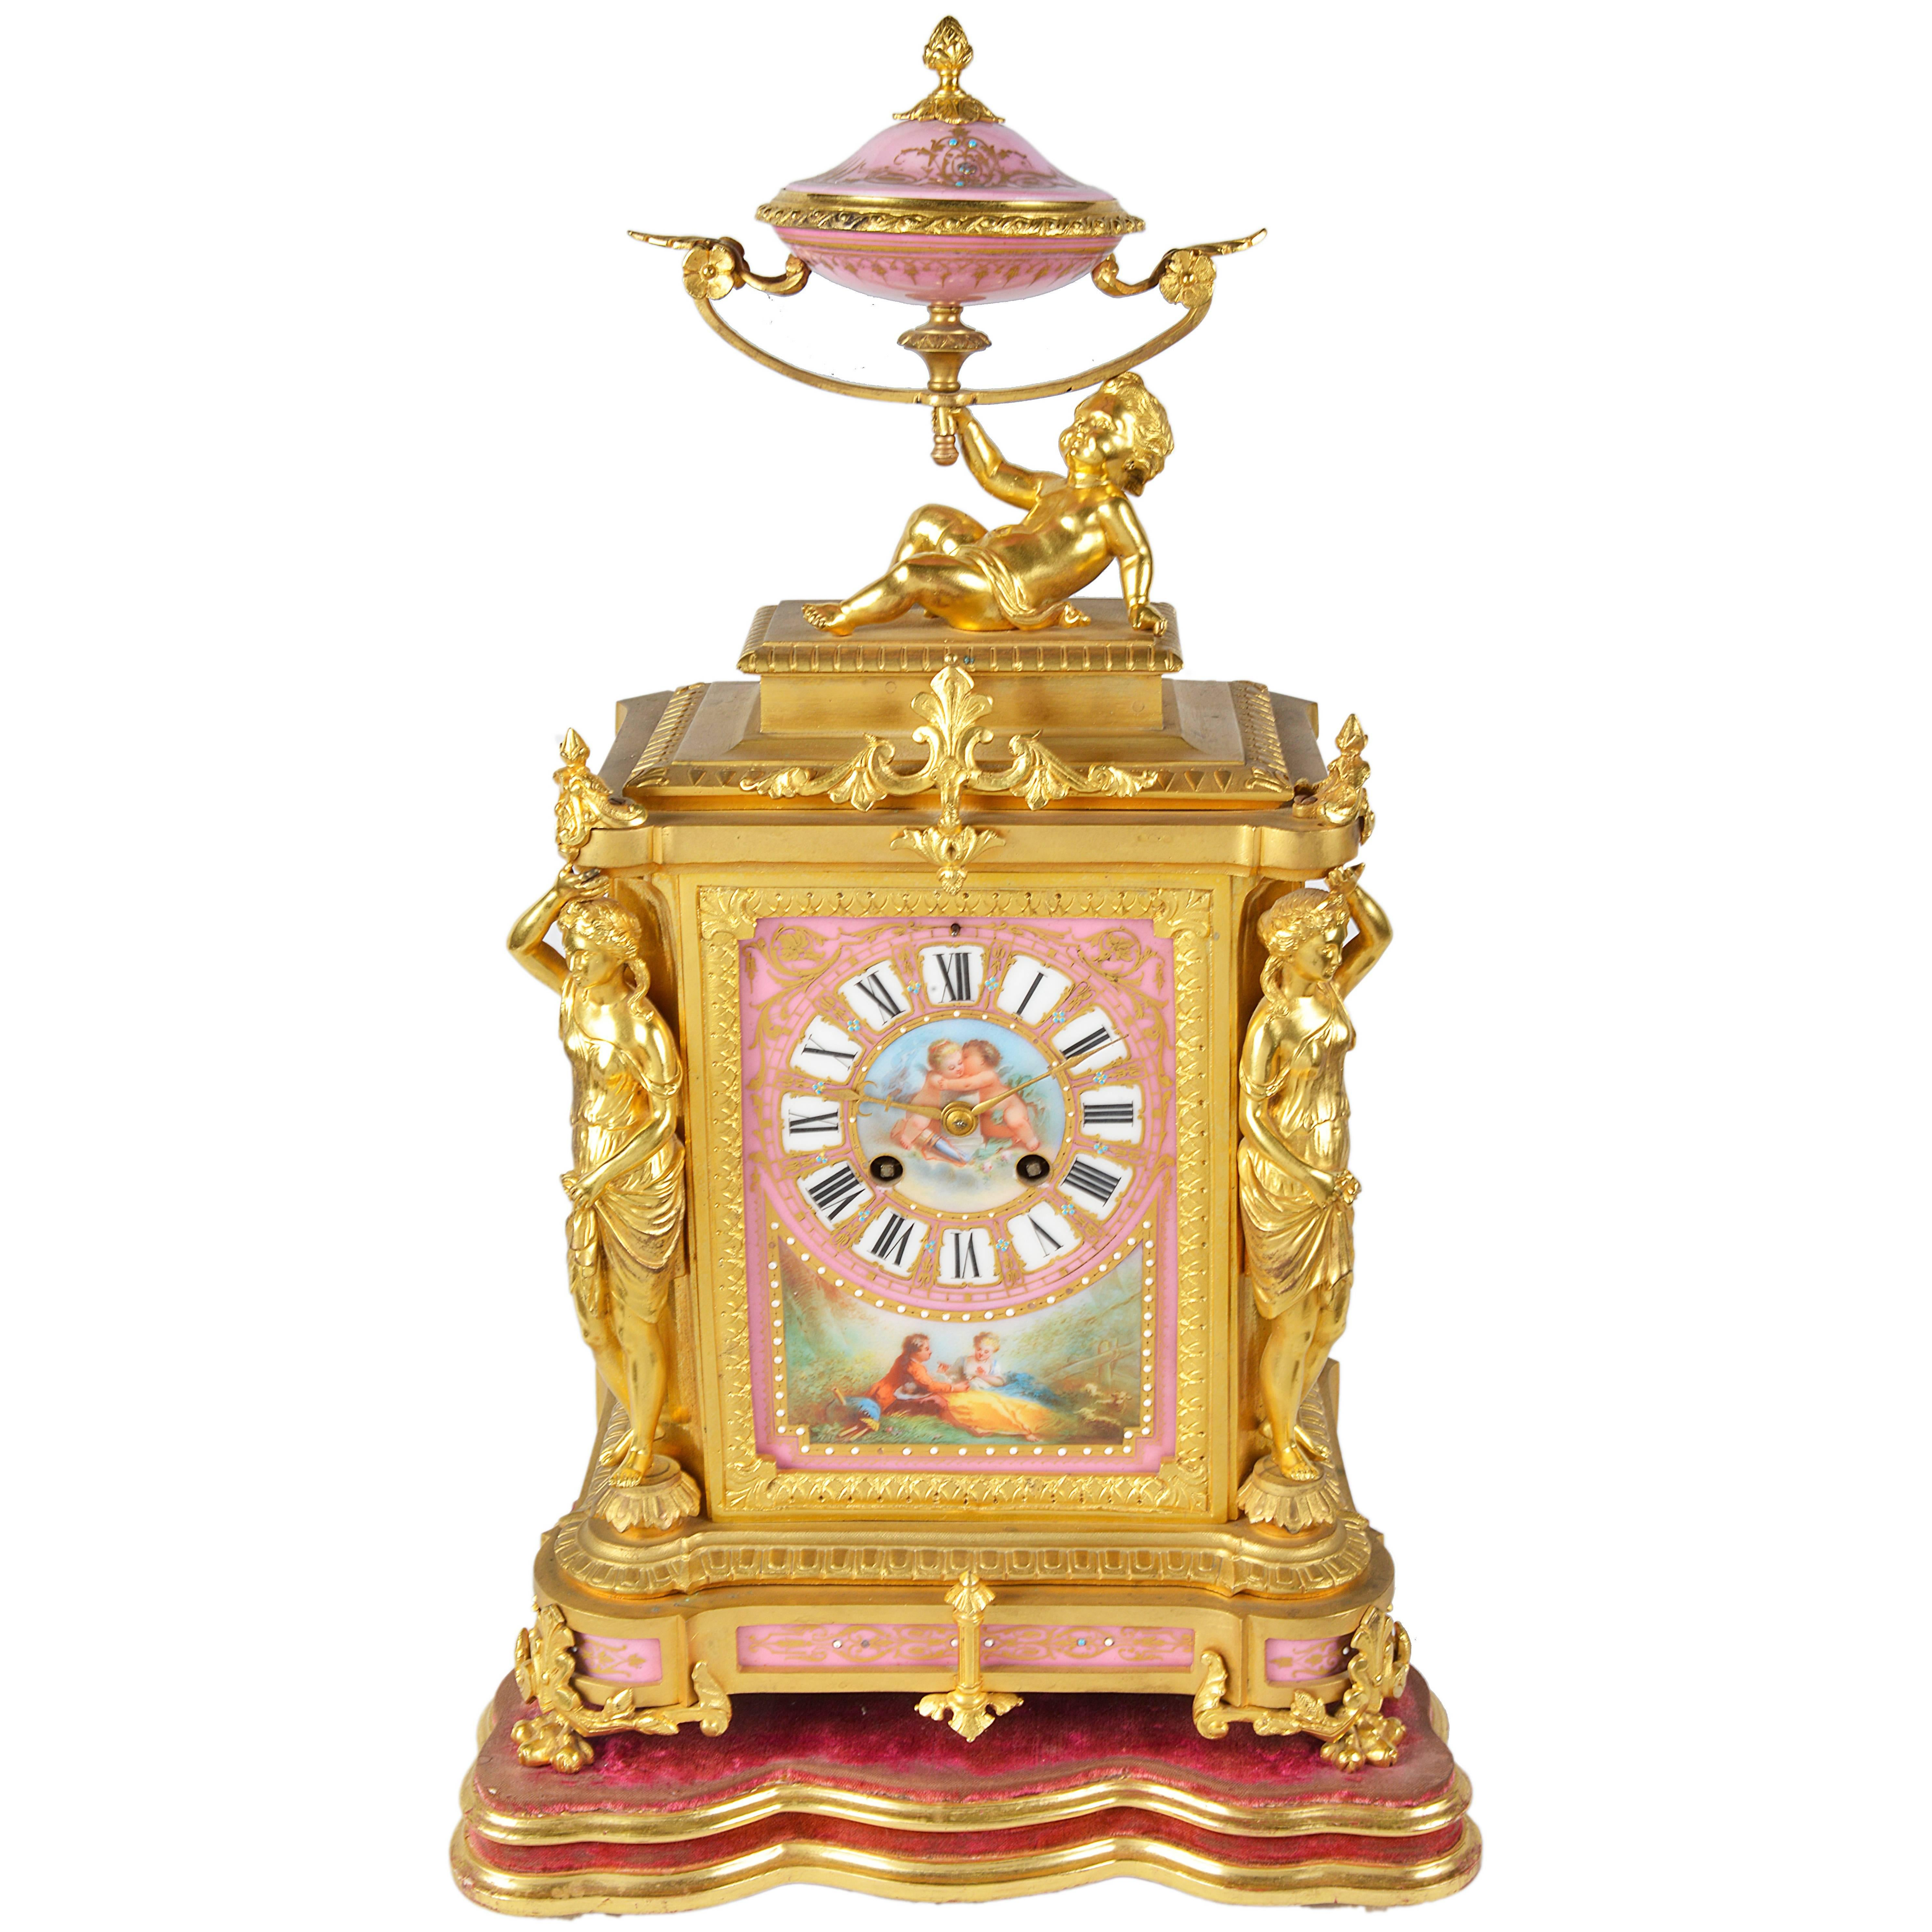 Antique French Sevres Mantel Clock